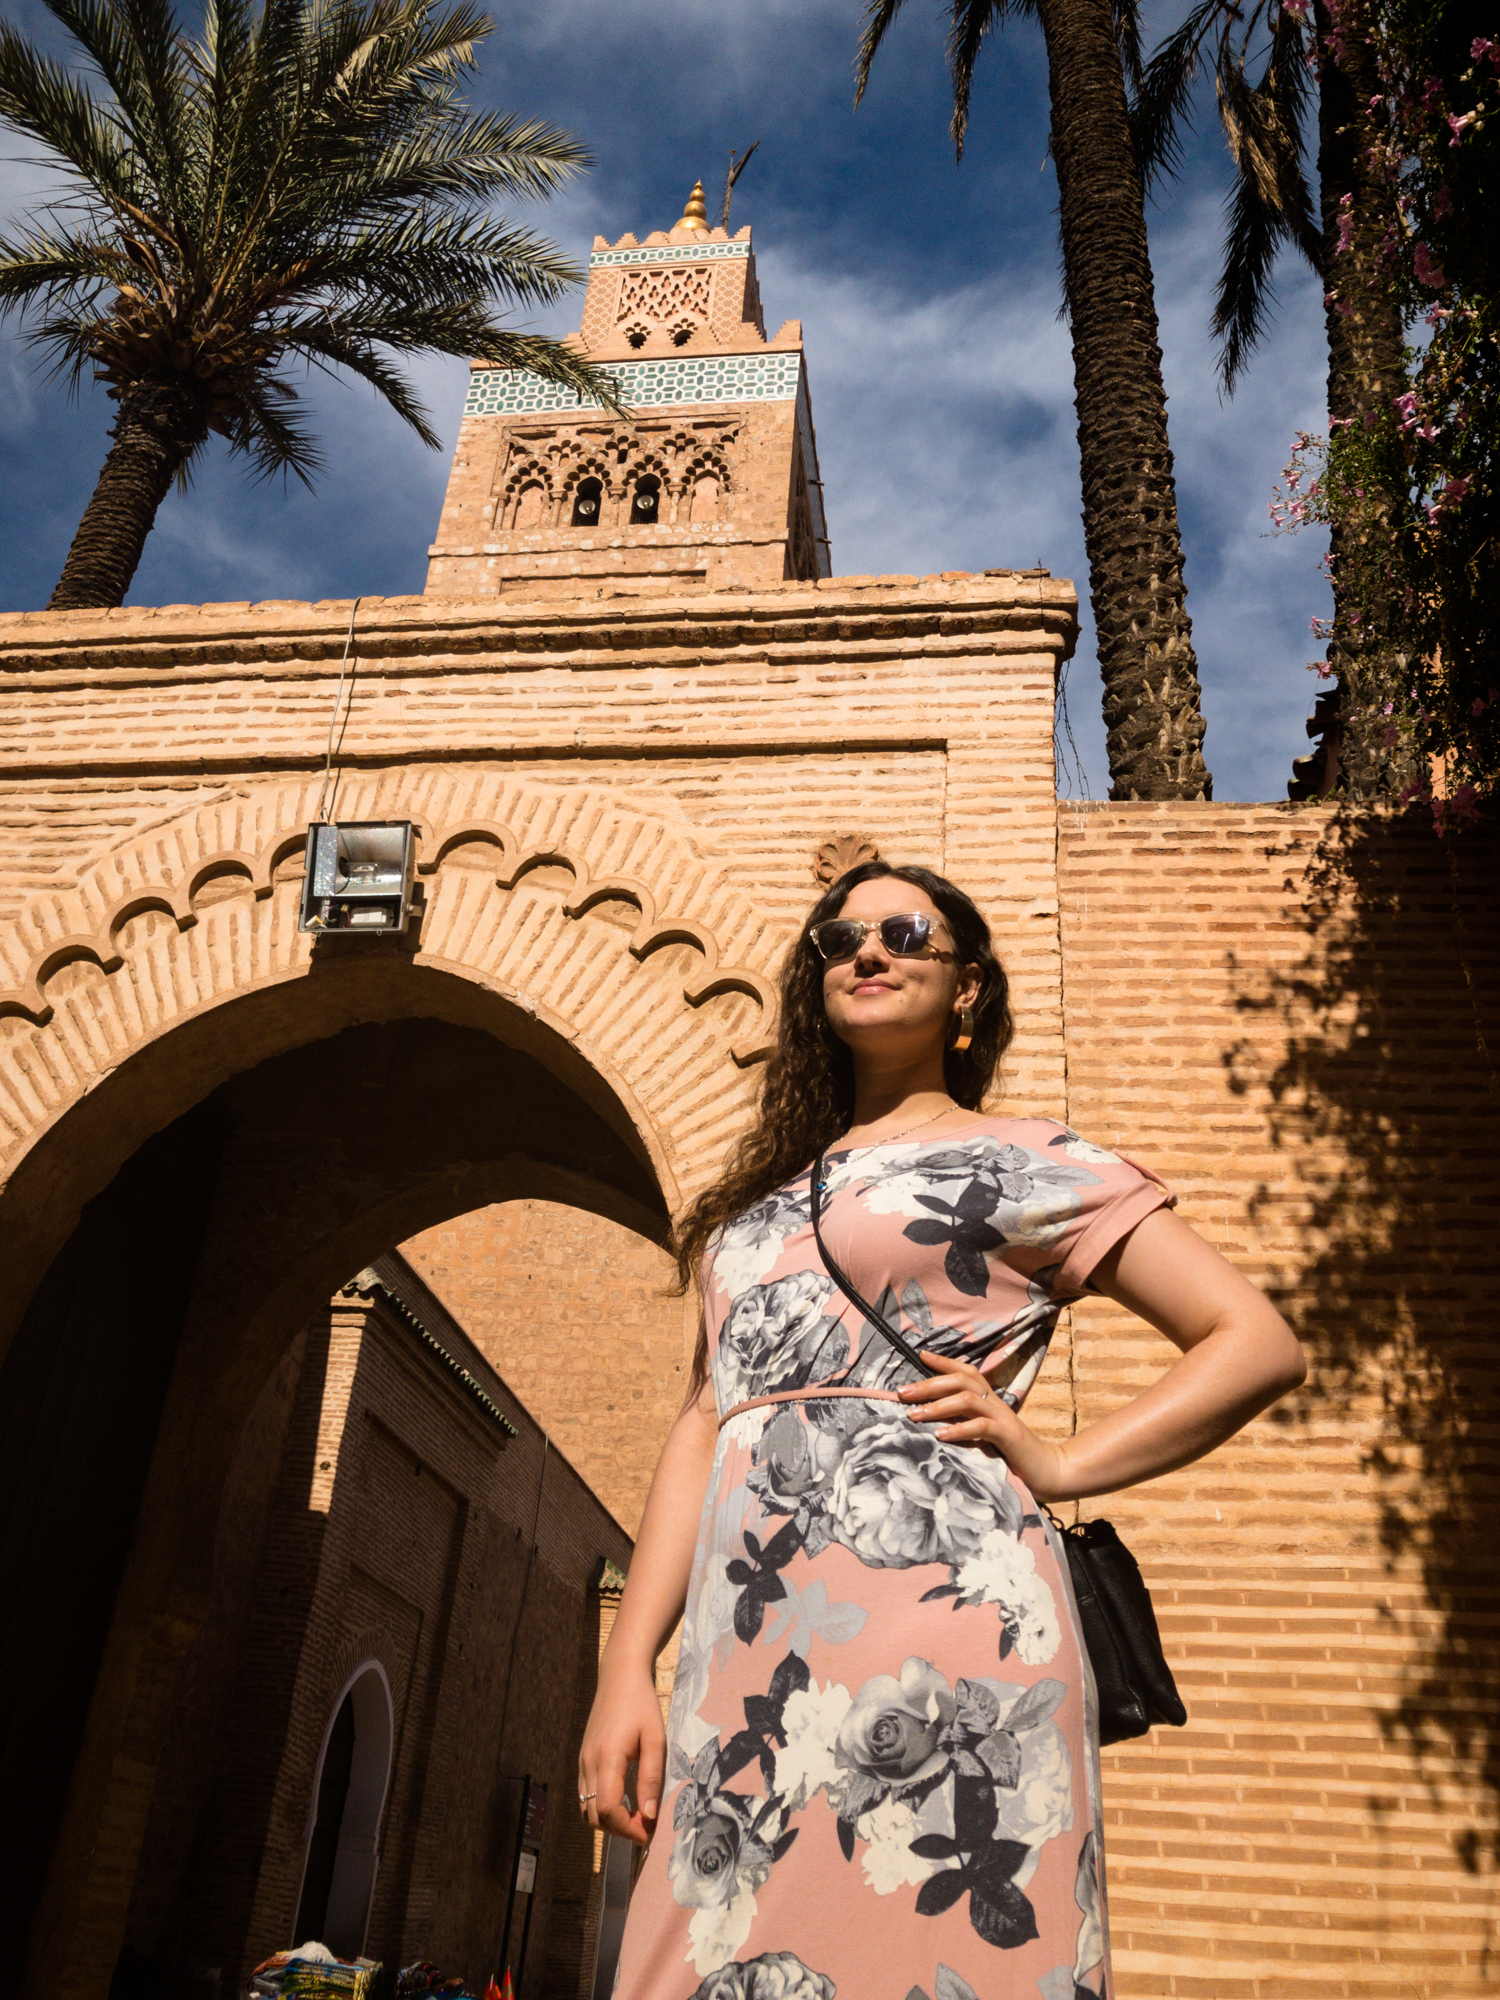 Marrakech_iPhone8+_Photos - Blog_Photos-18.jpg